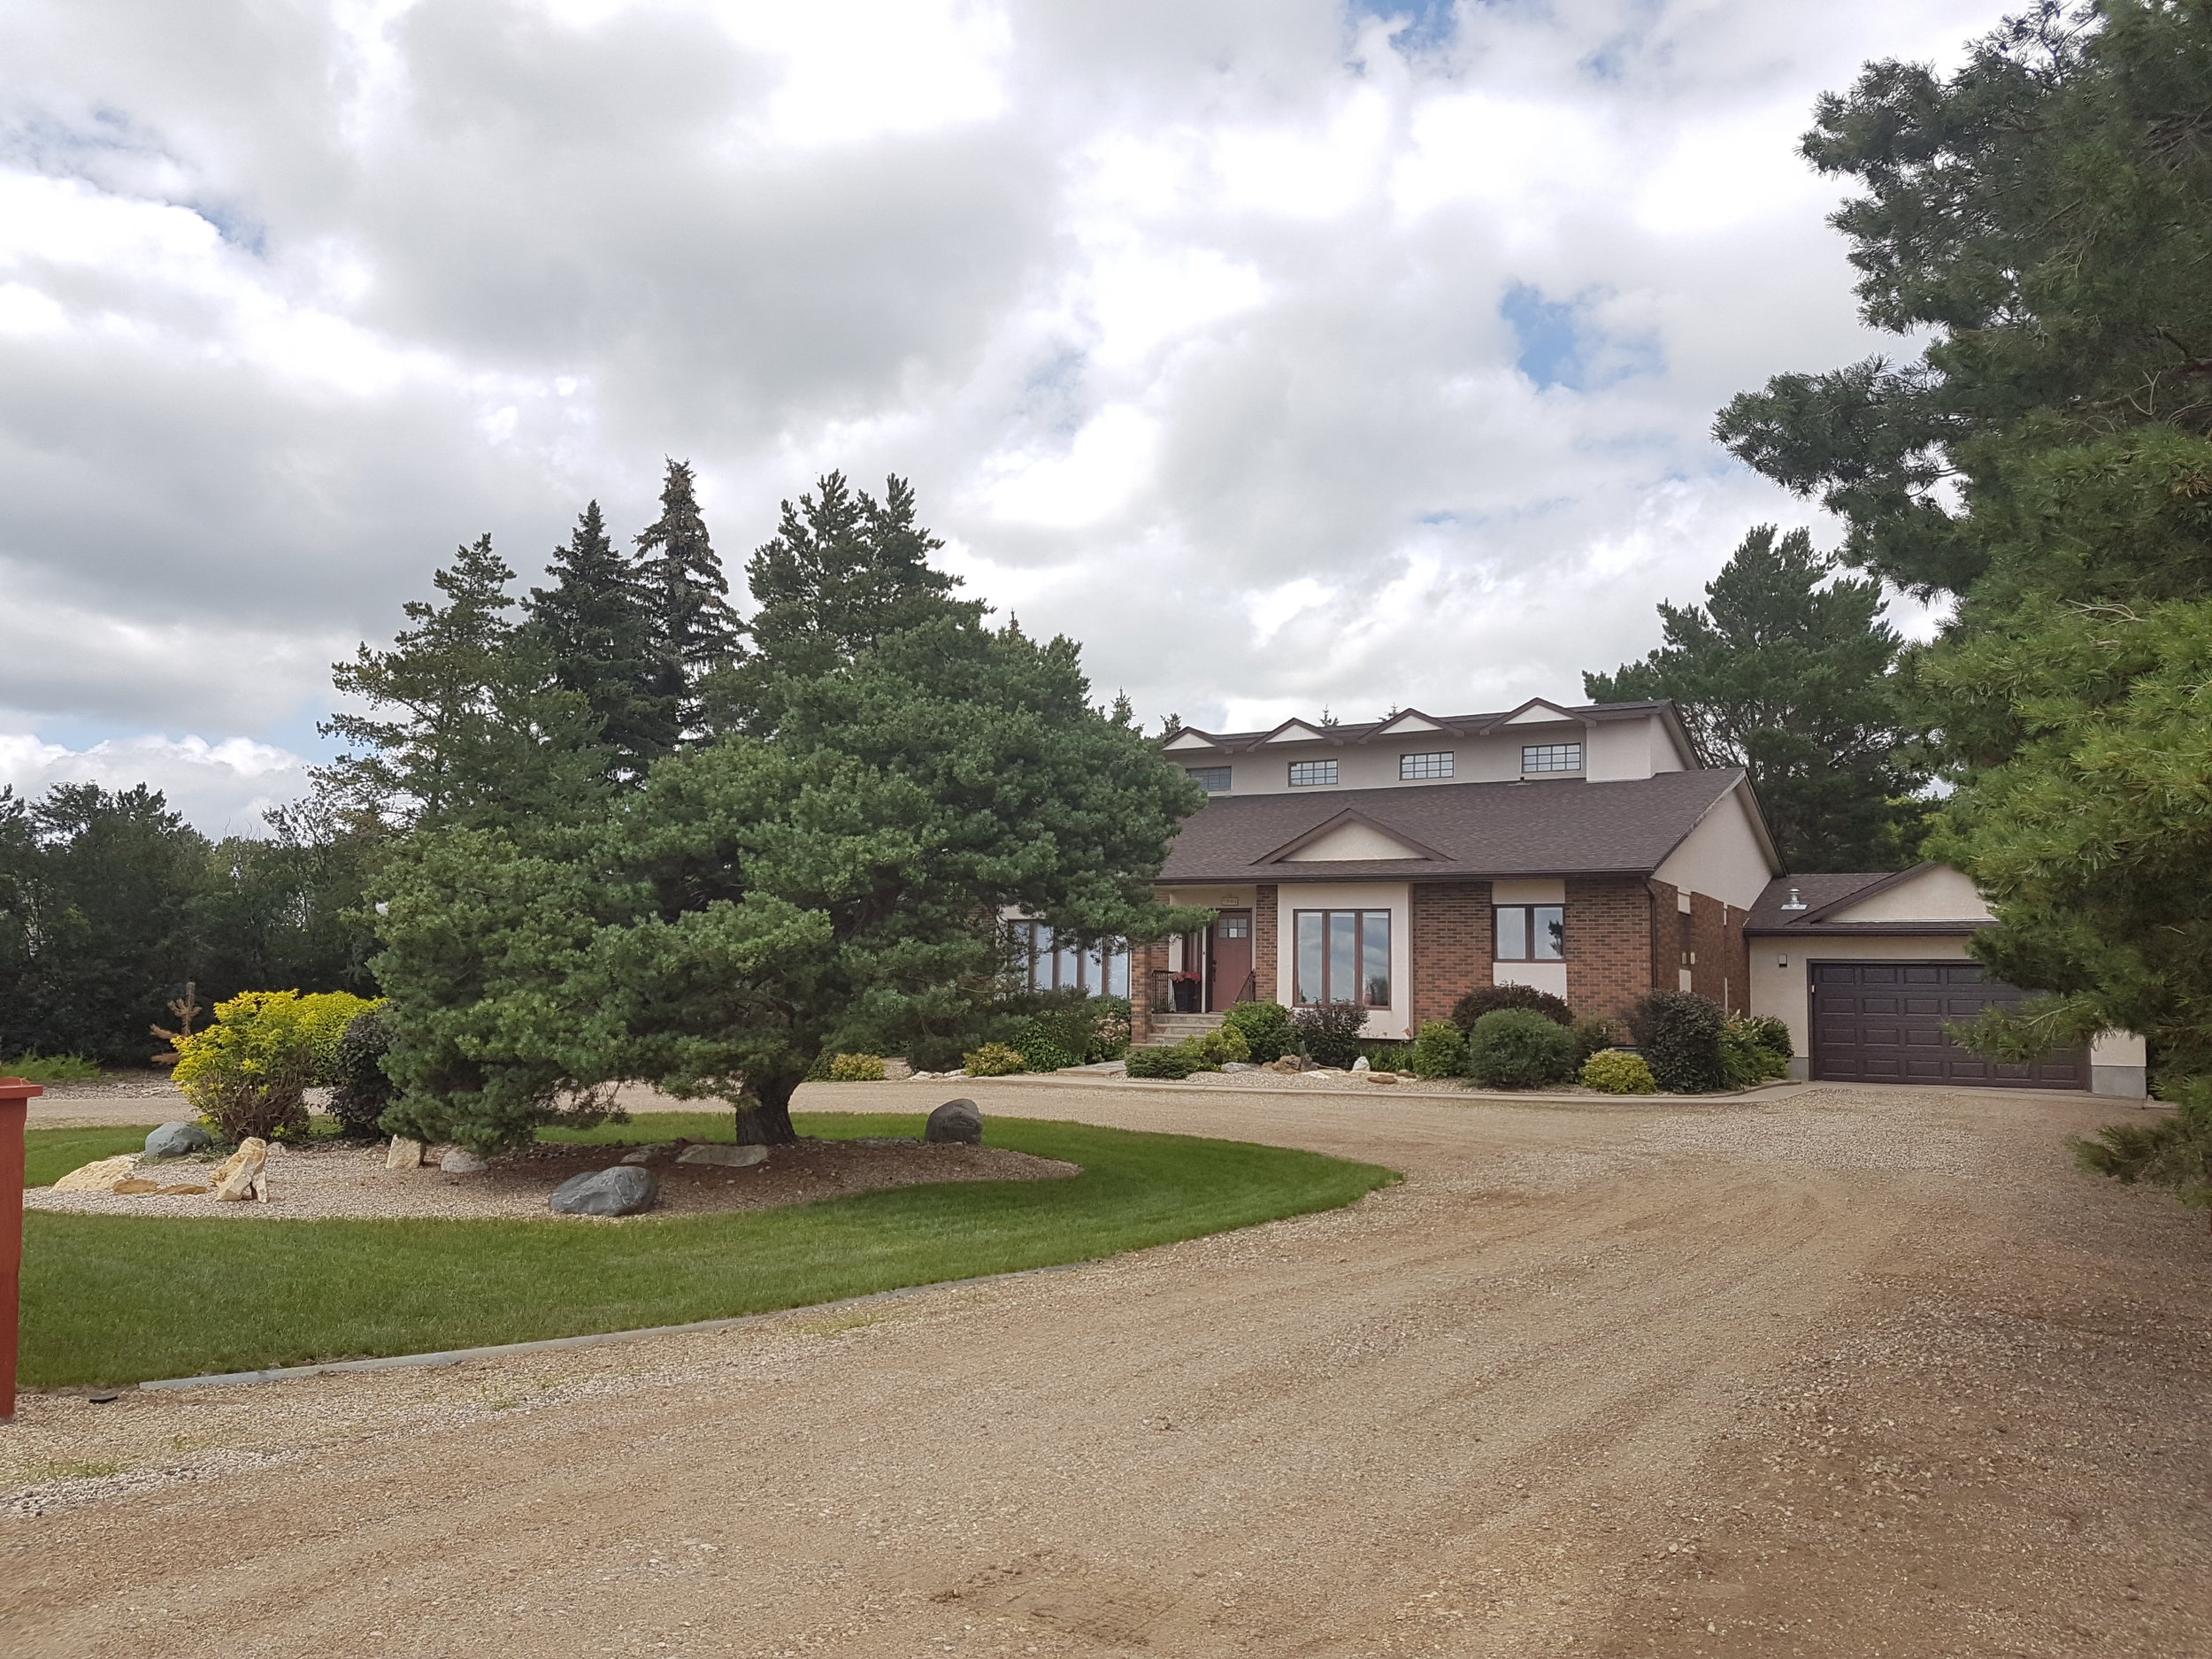 Curtis and Kirby Campbell's home was tied for Best Residential Property